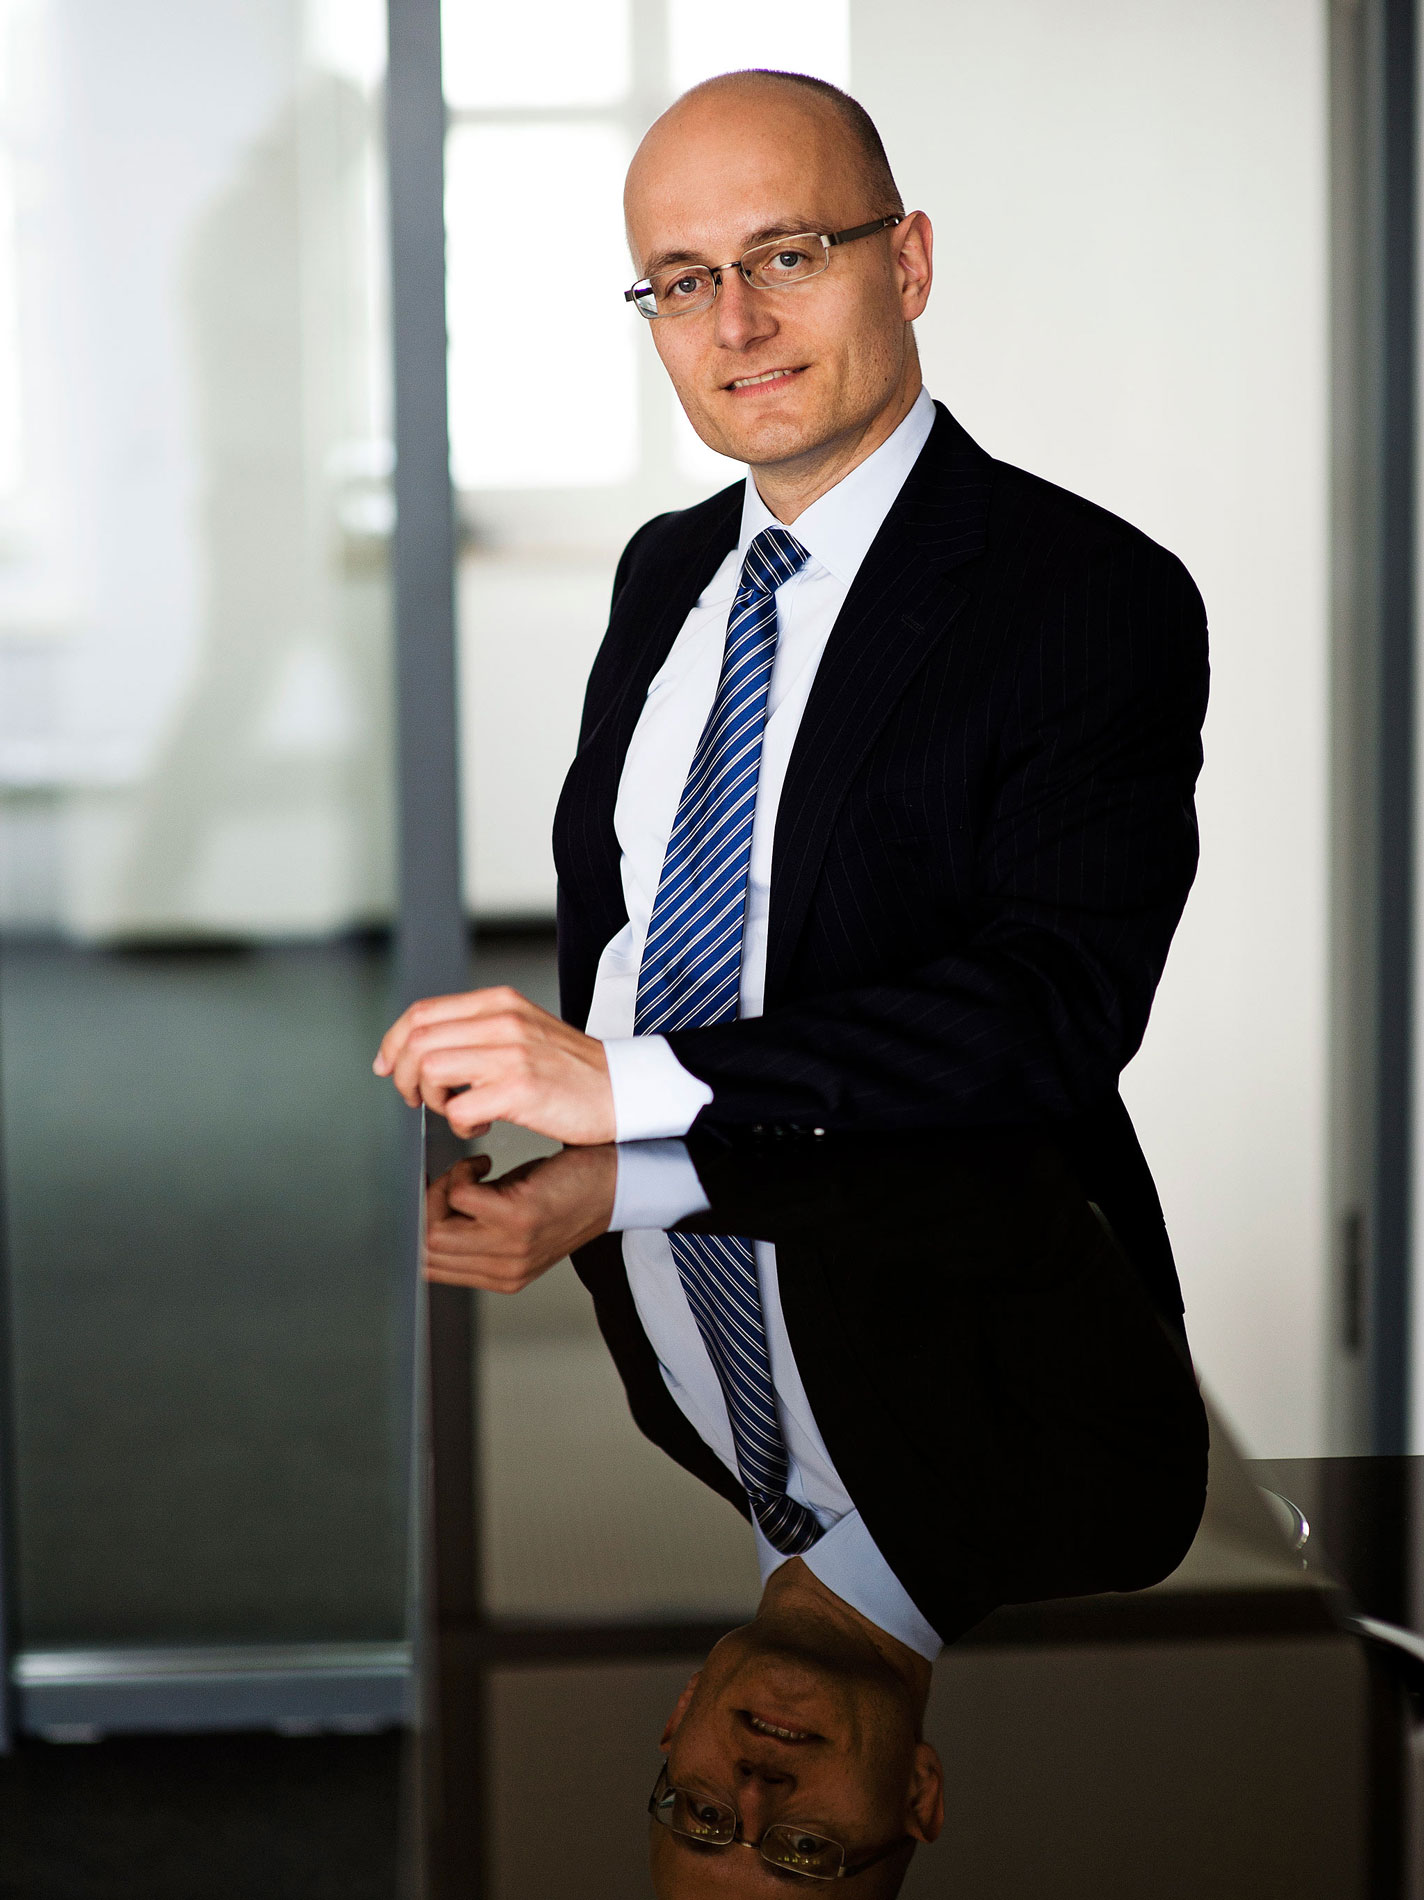 Dietmar Gieringer, office performance, Training, Hamburg, Pingel Photographie, Einzelportrait, single portraiture